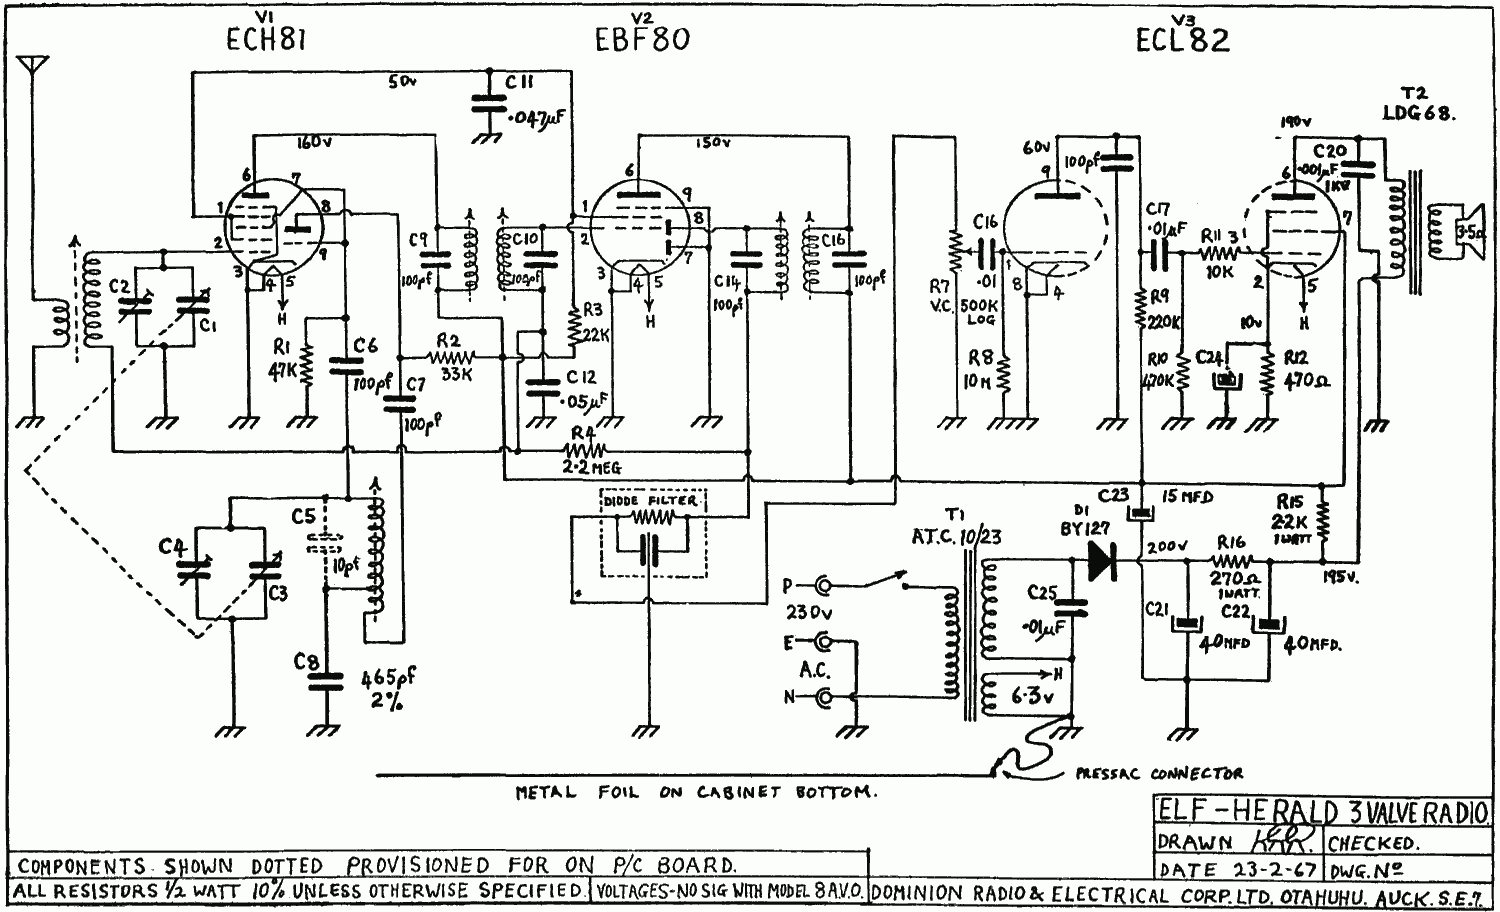 1967 La Gloria Elf Schematic